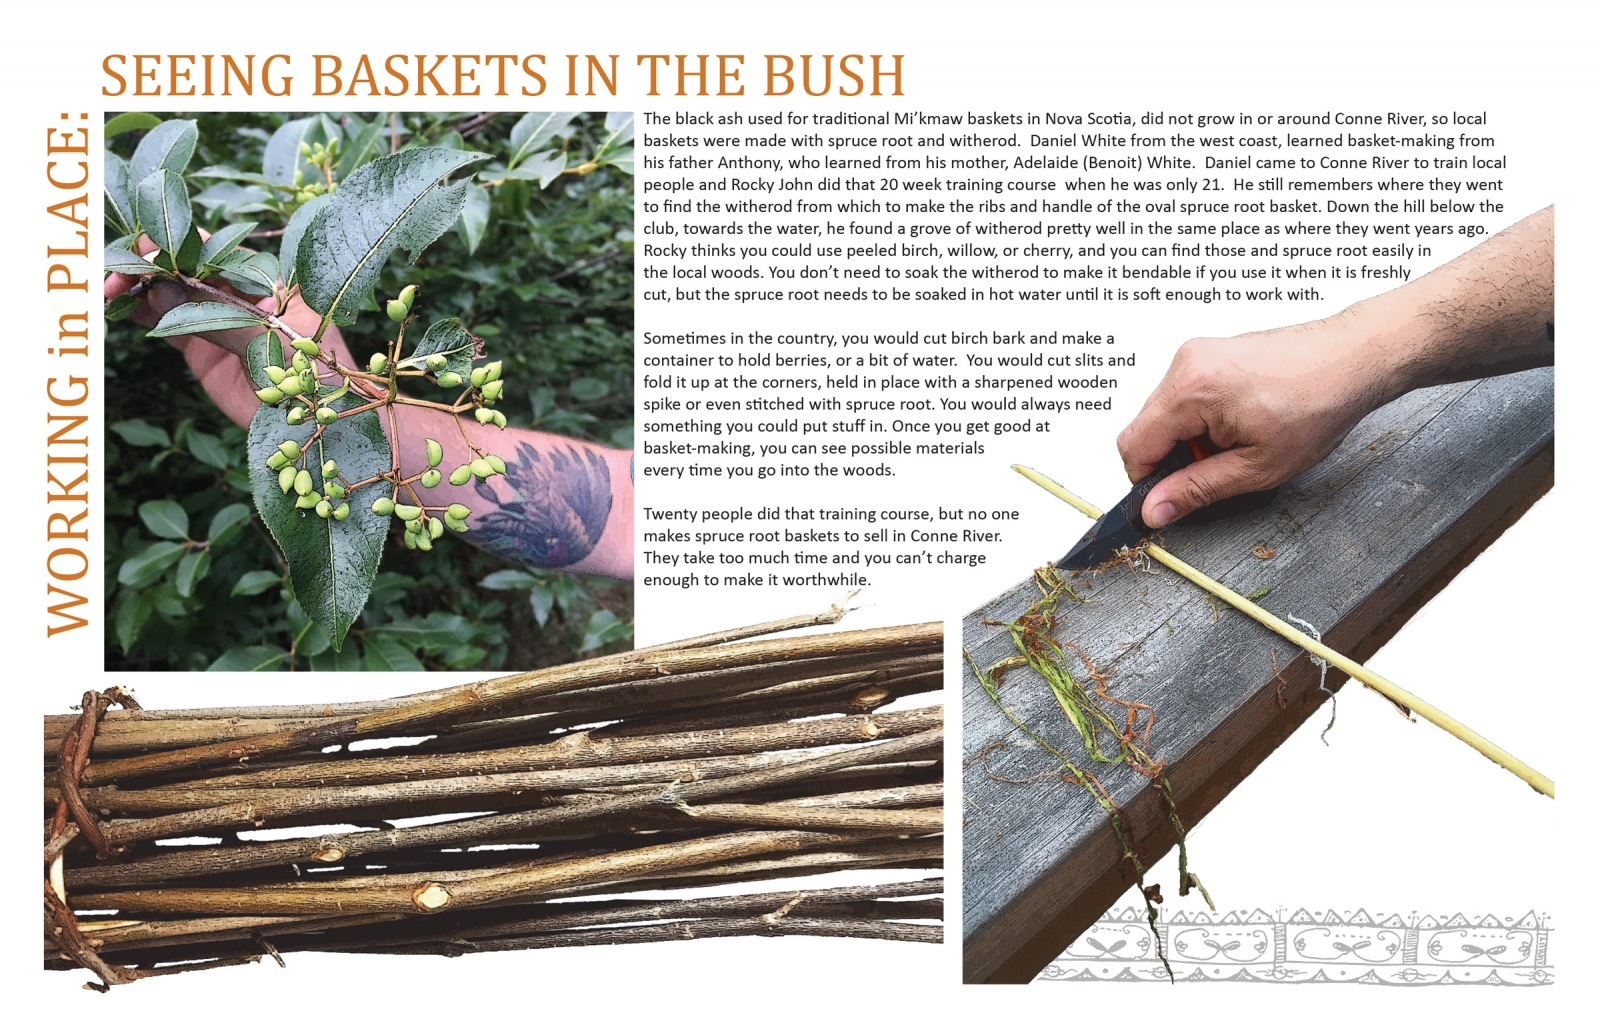 Working in Place: Seeing Baskets in the Bush